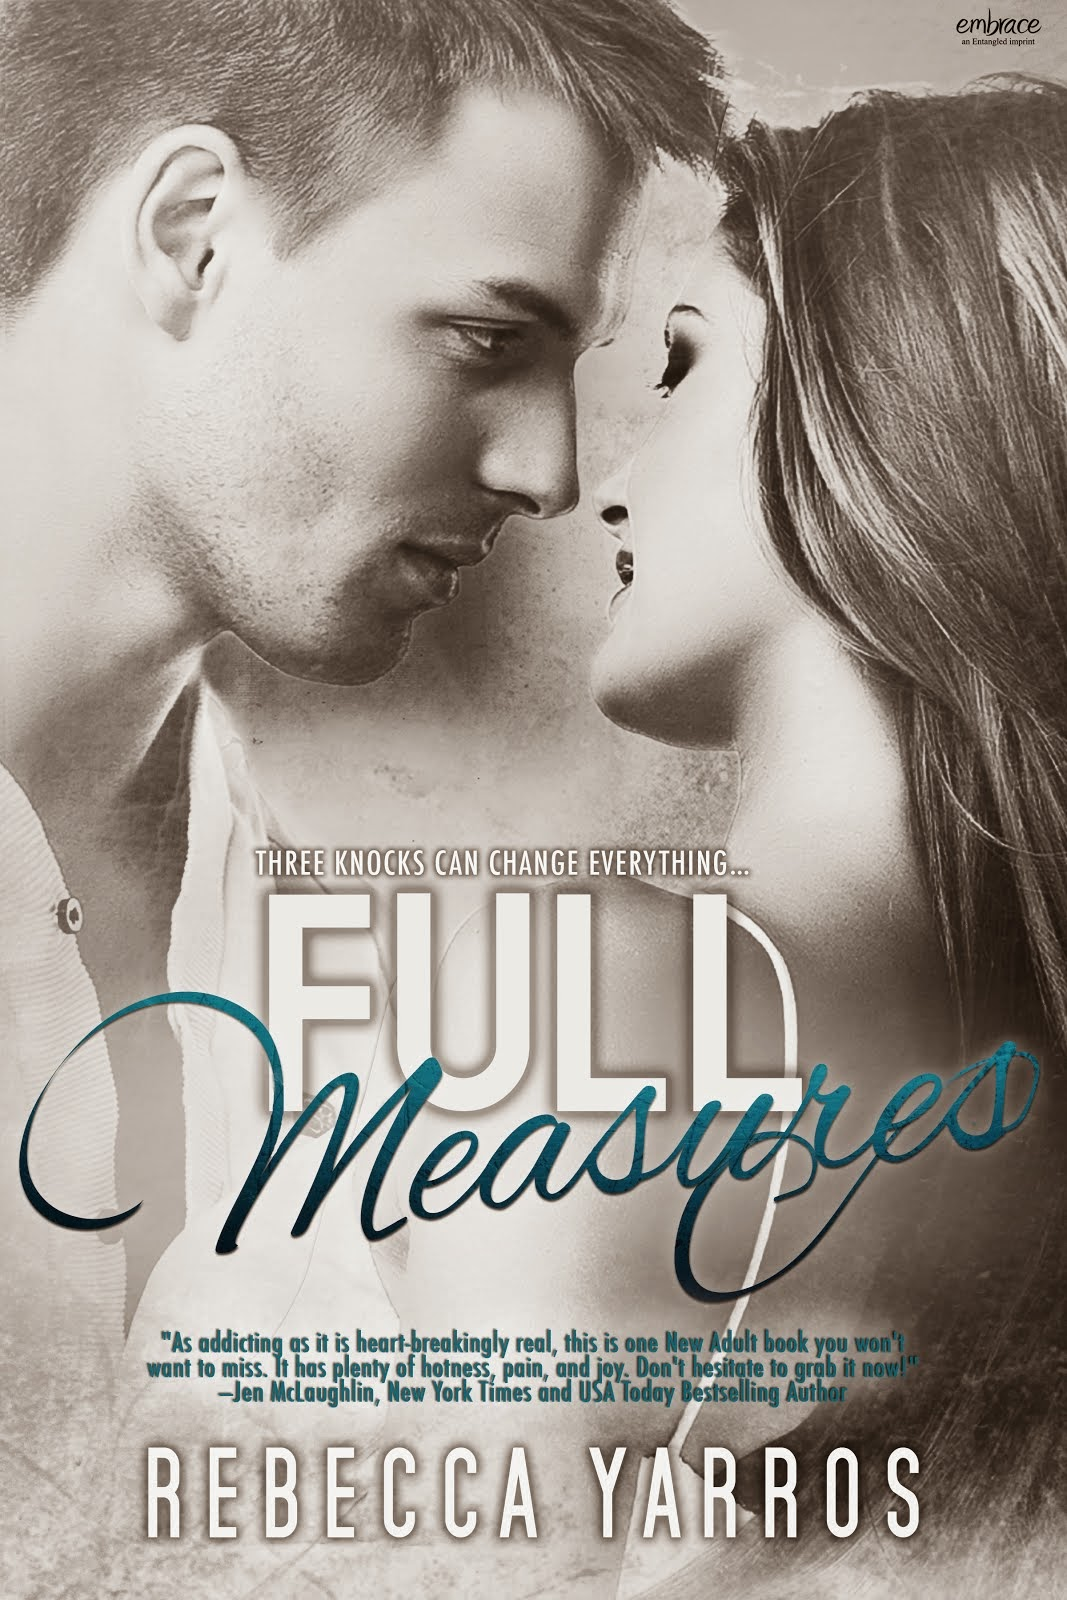 Full Measures has been Released!